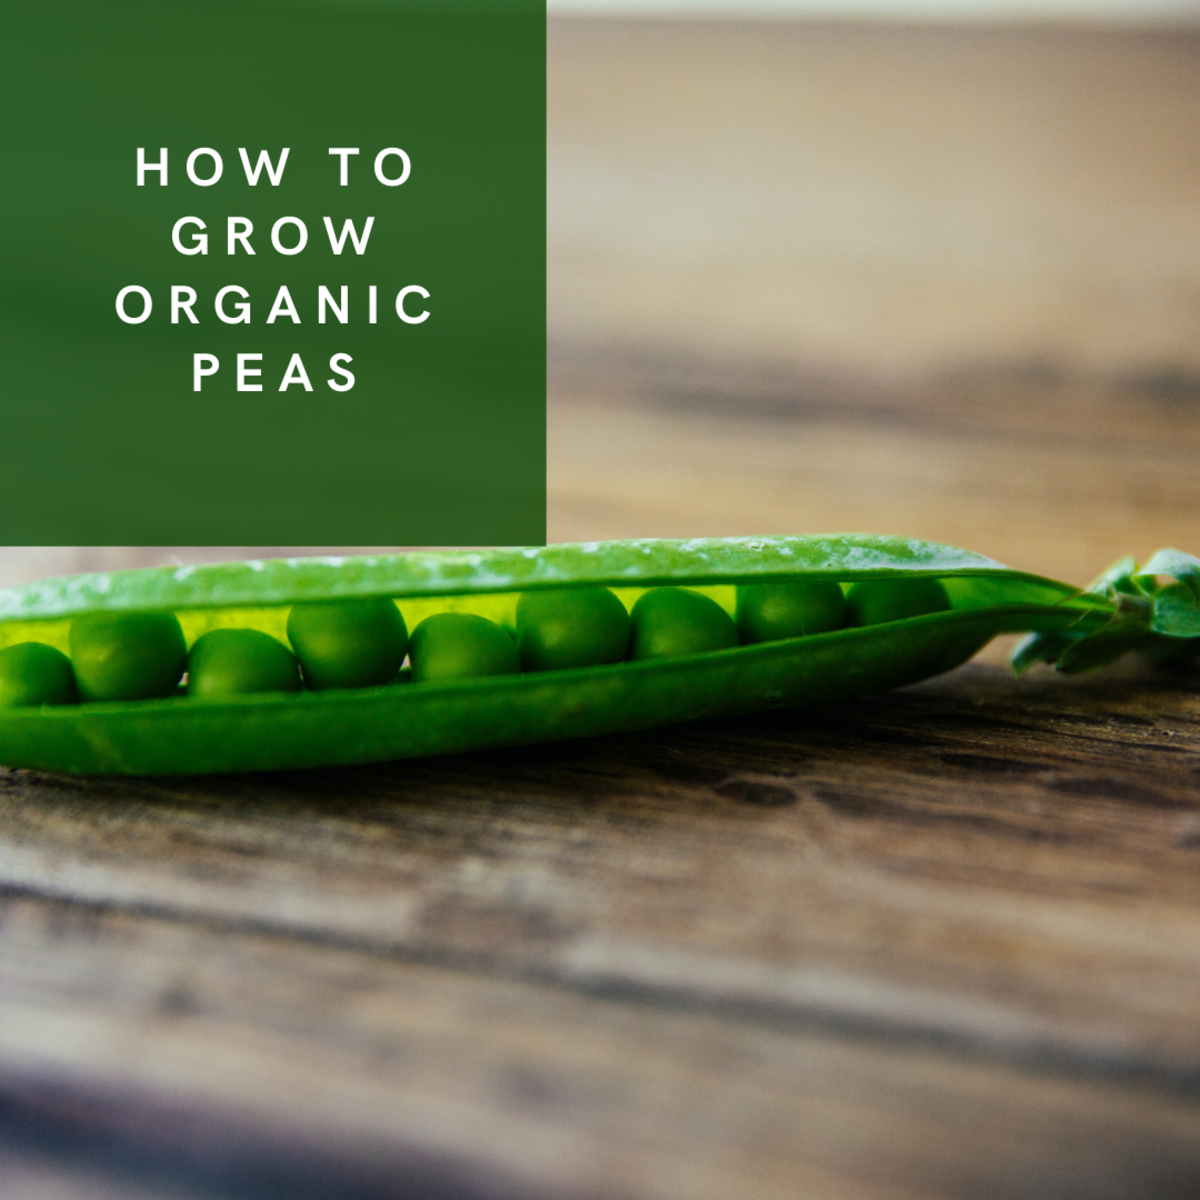 Learn how to grow your own organic peas!